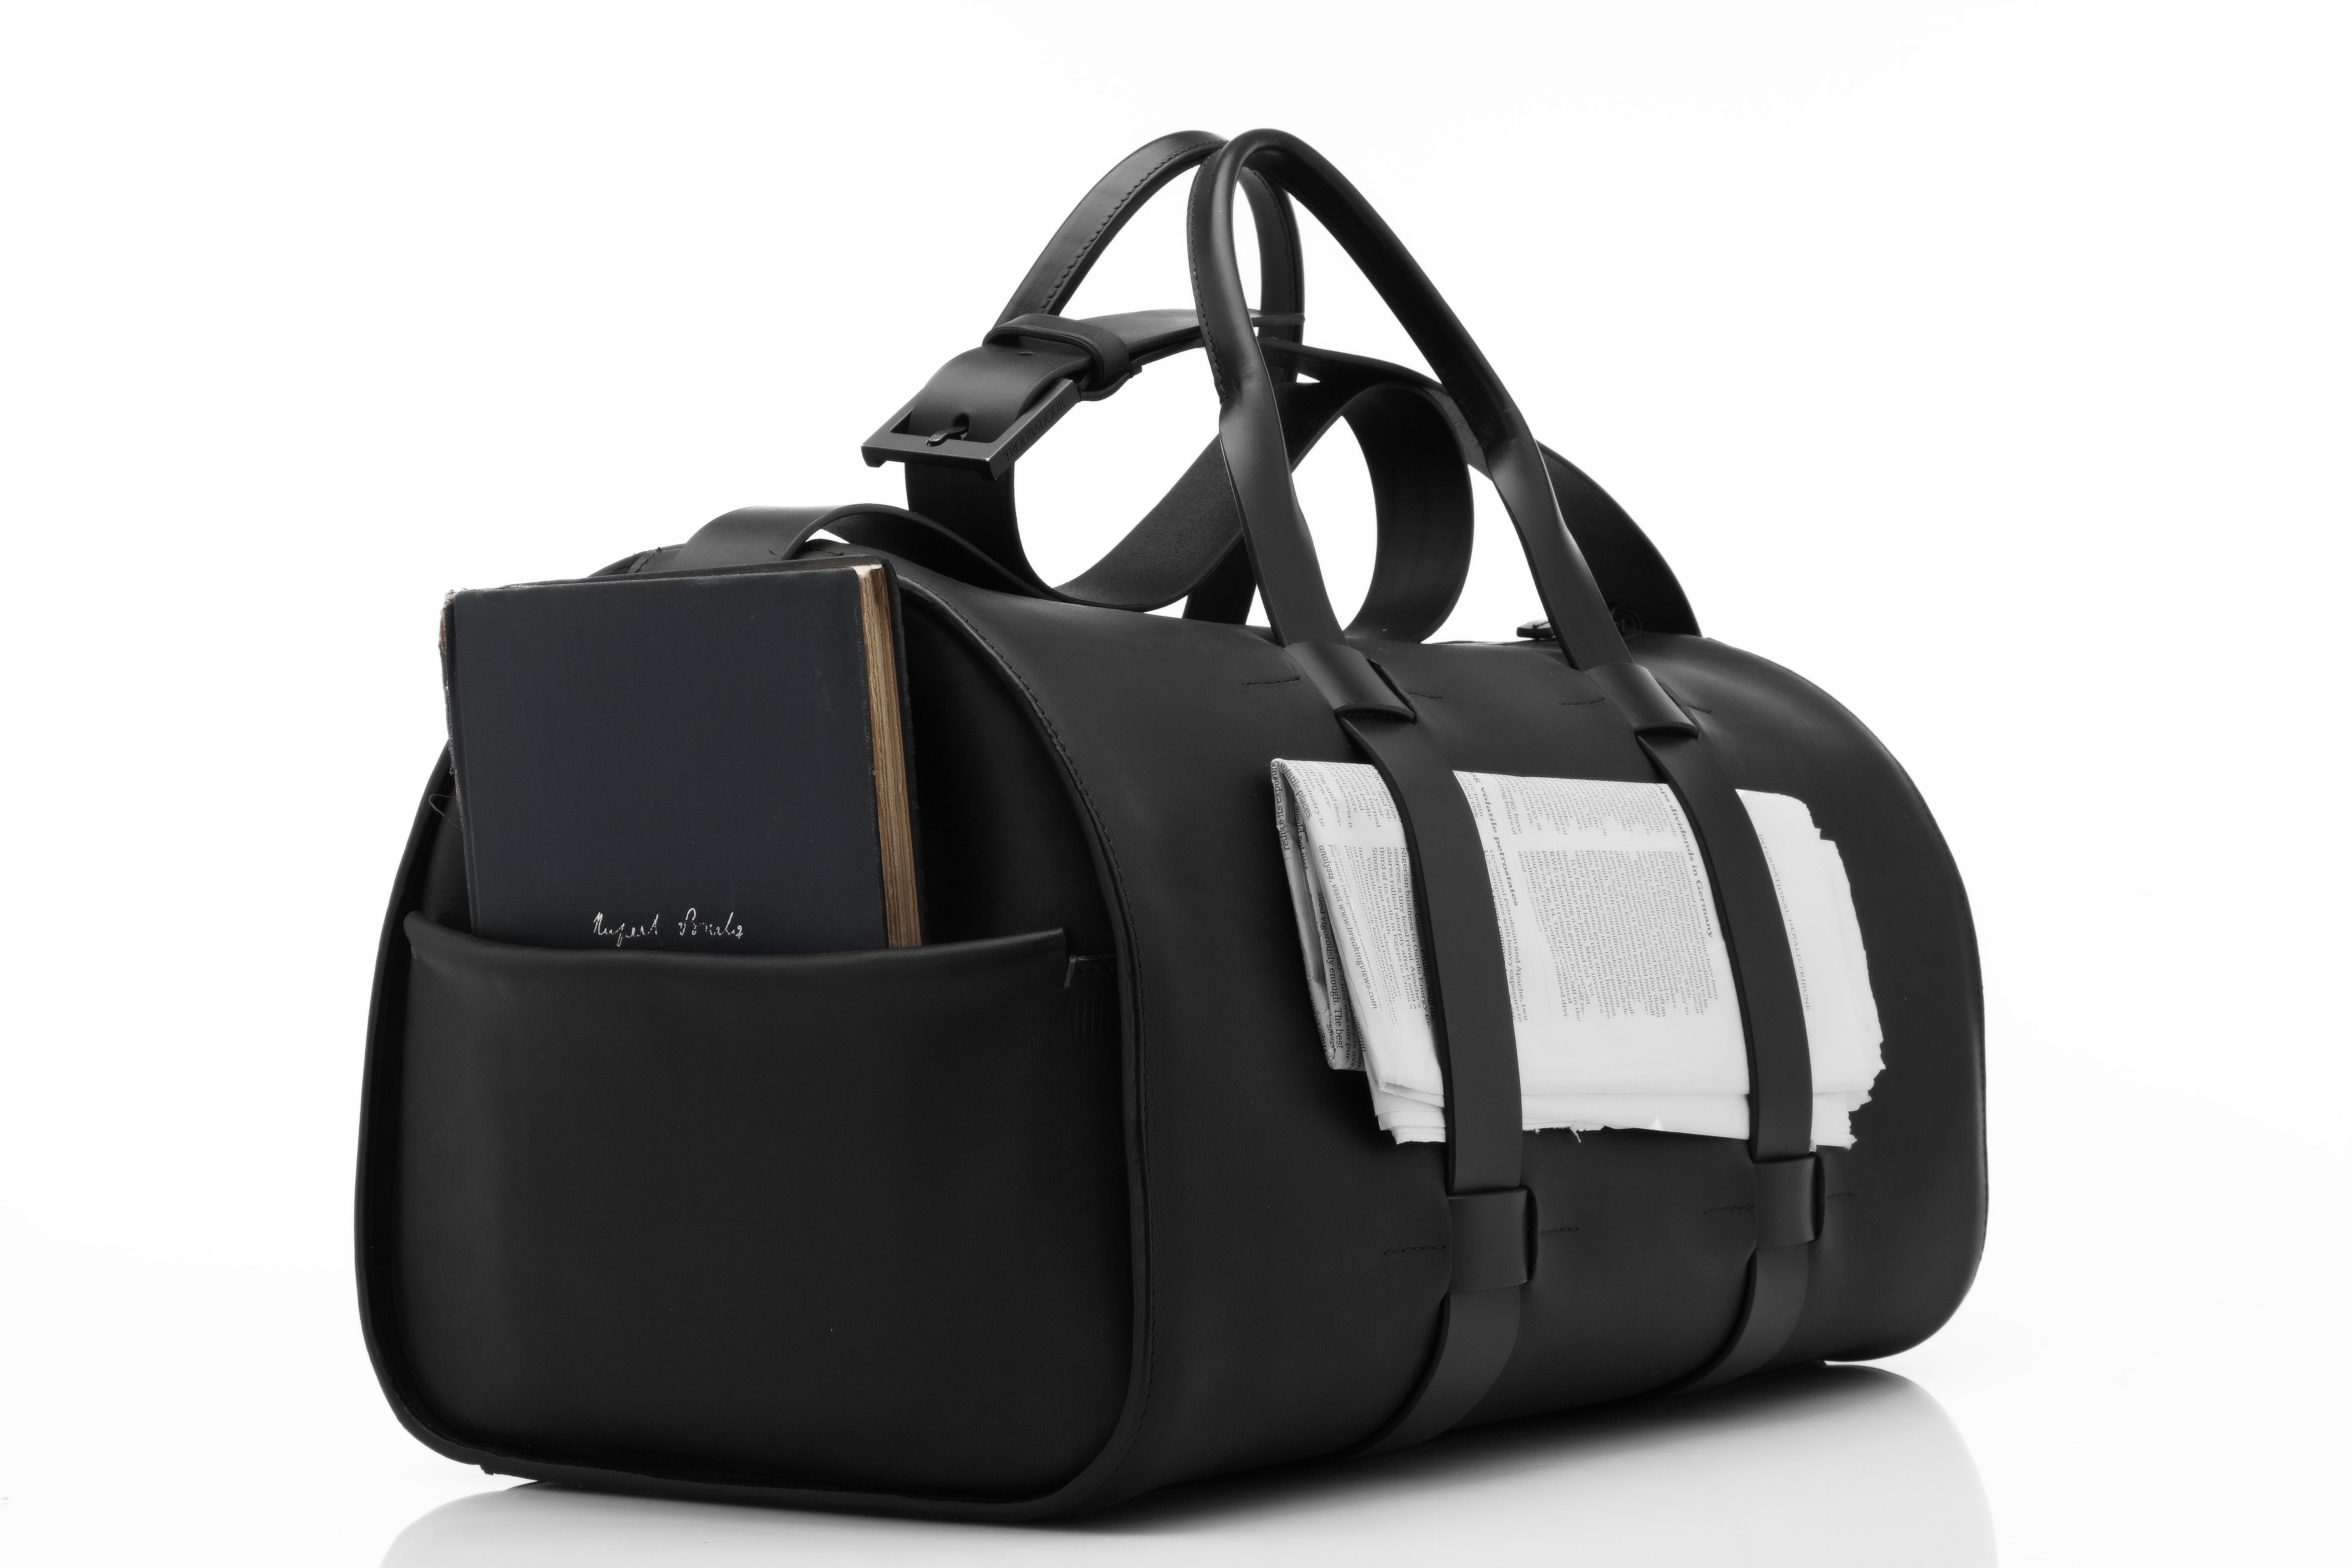 9ab4f00b4711 Troubadour Day Bag - Black London-based luxury men s accessories brand  specialising in superior handcrafted leather goods for men. Functional  Design.